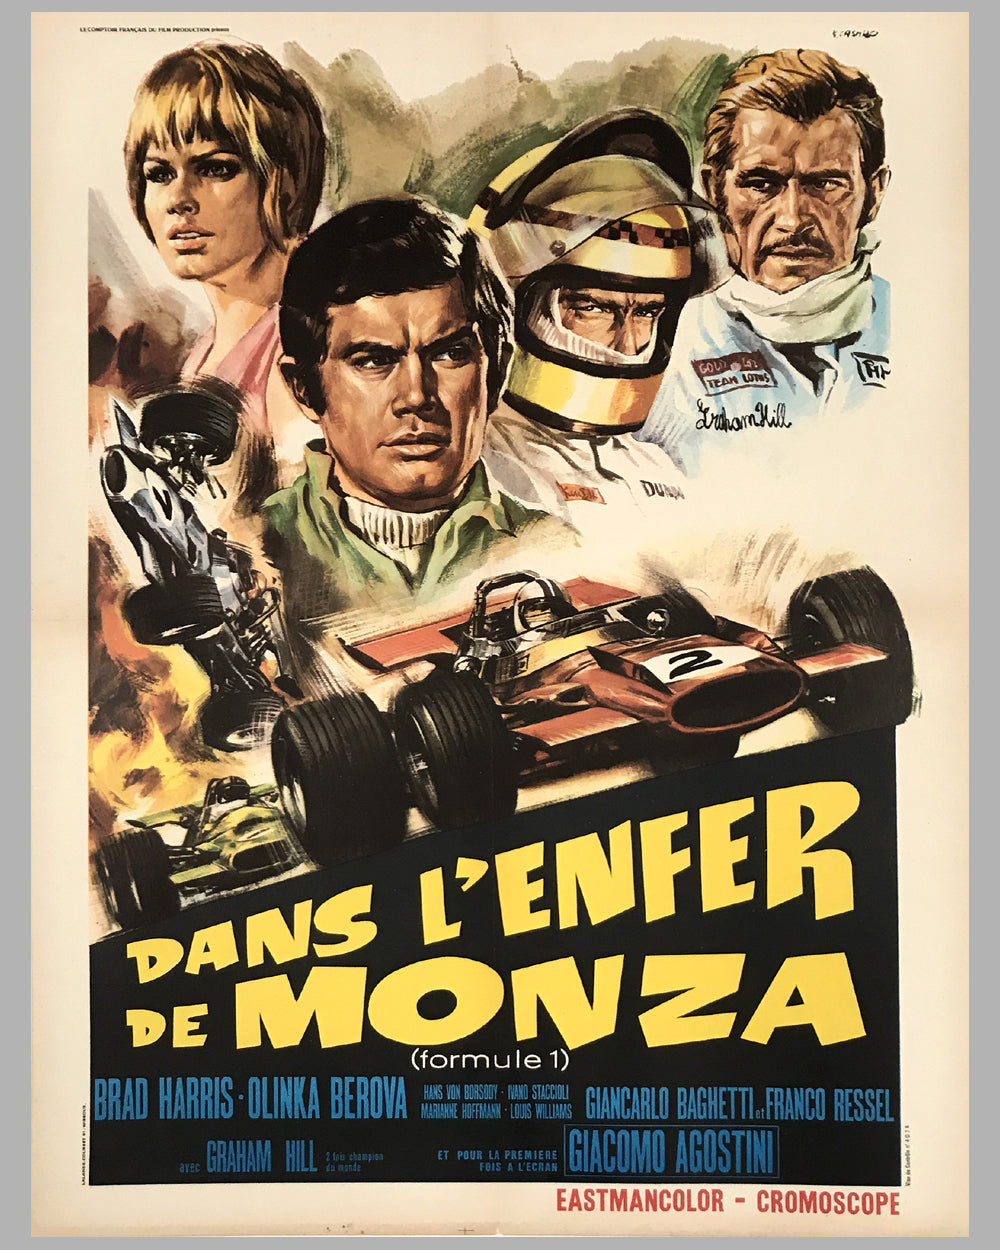 Dans l'Enfer de Monza movie poster, 1972